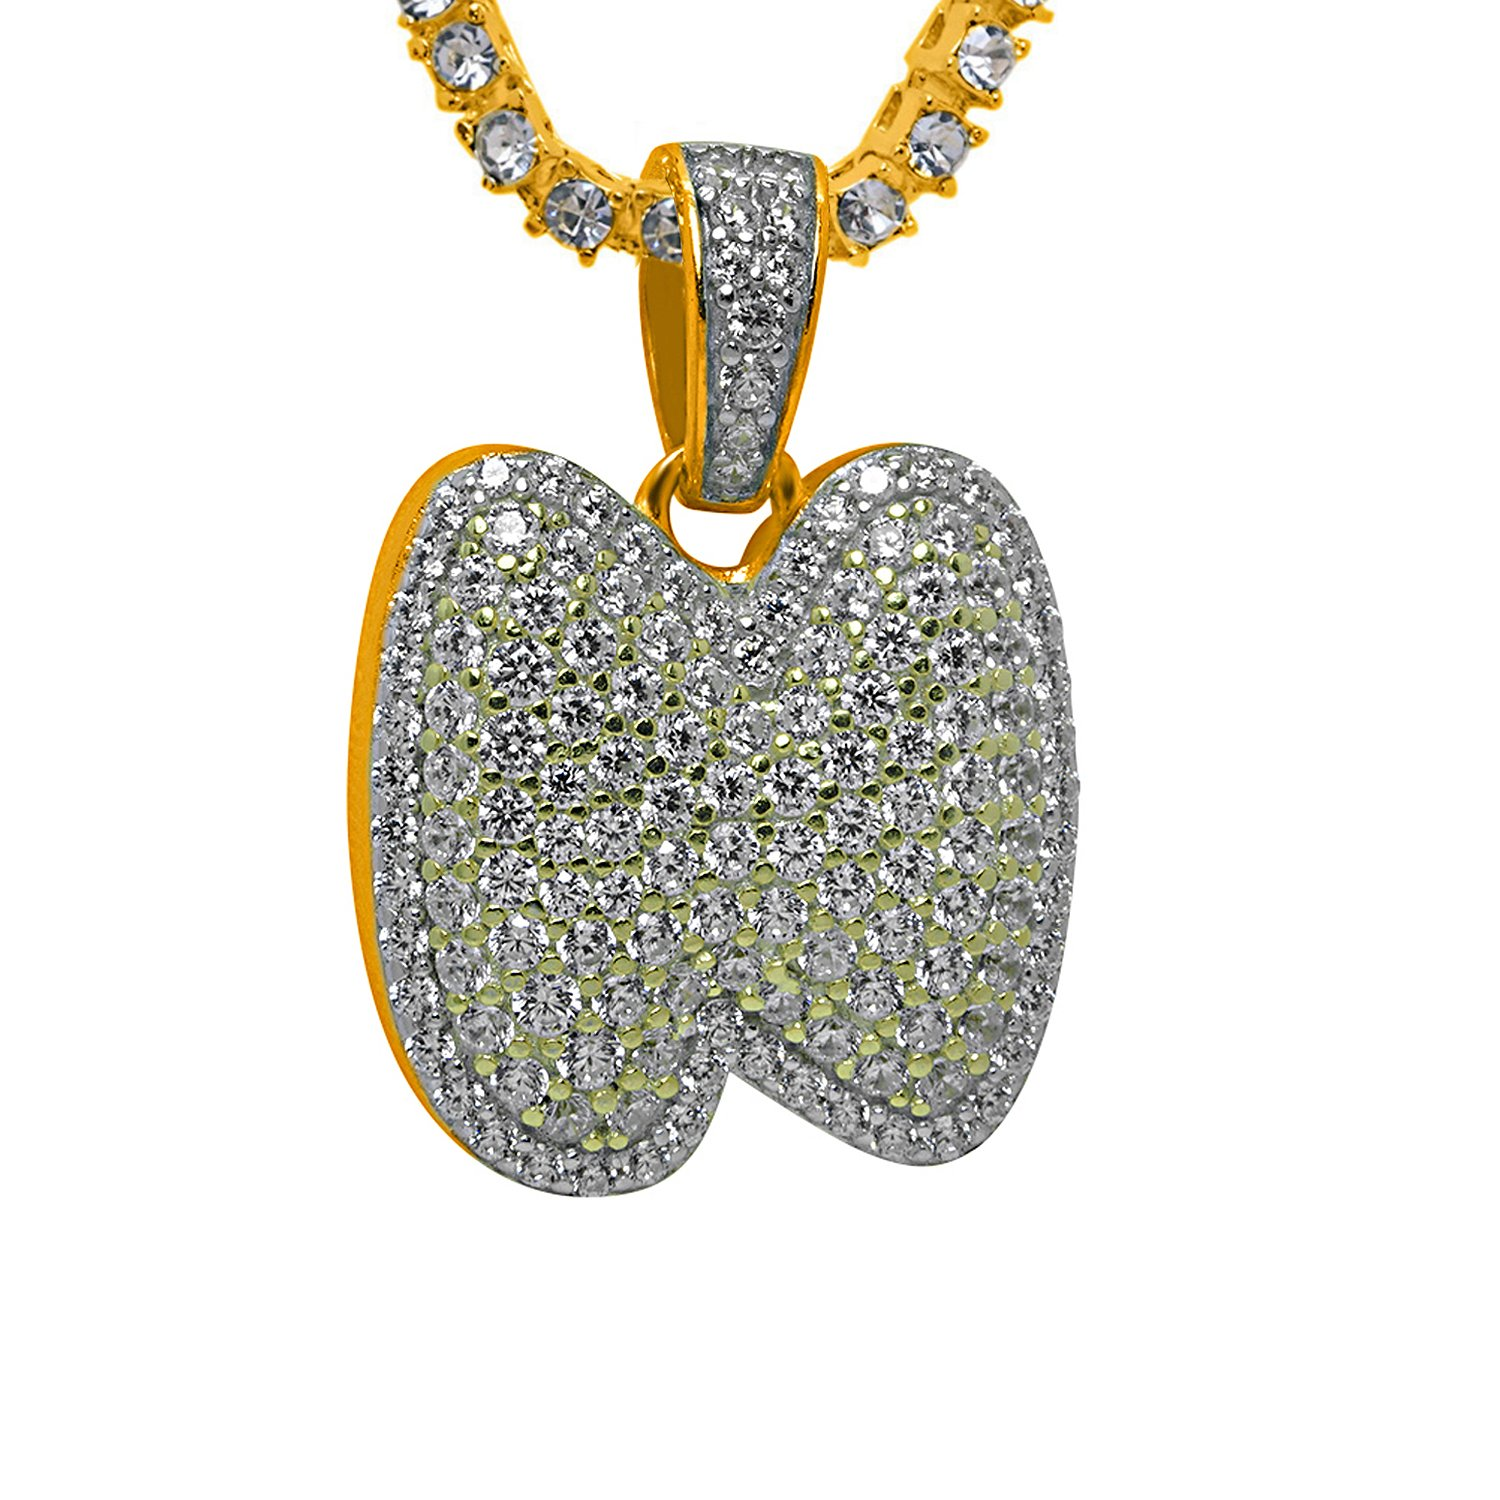 925 Sterling Silver Yellow Gold-Tone Iced Style Hip Hop Swag Bling Bubble Letter N Pendant with 16 1 Row Chain